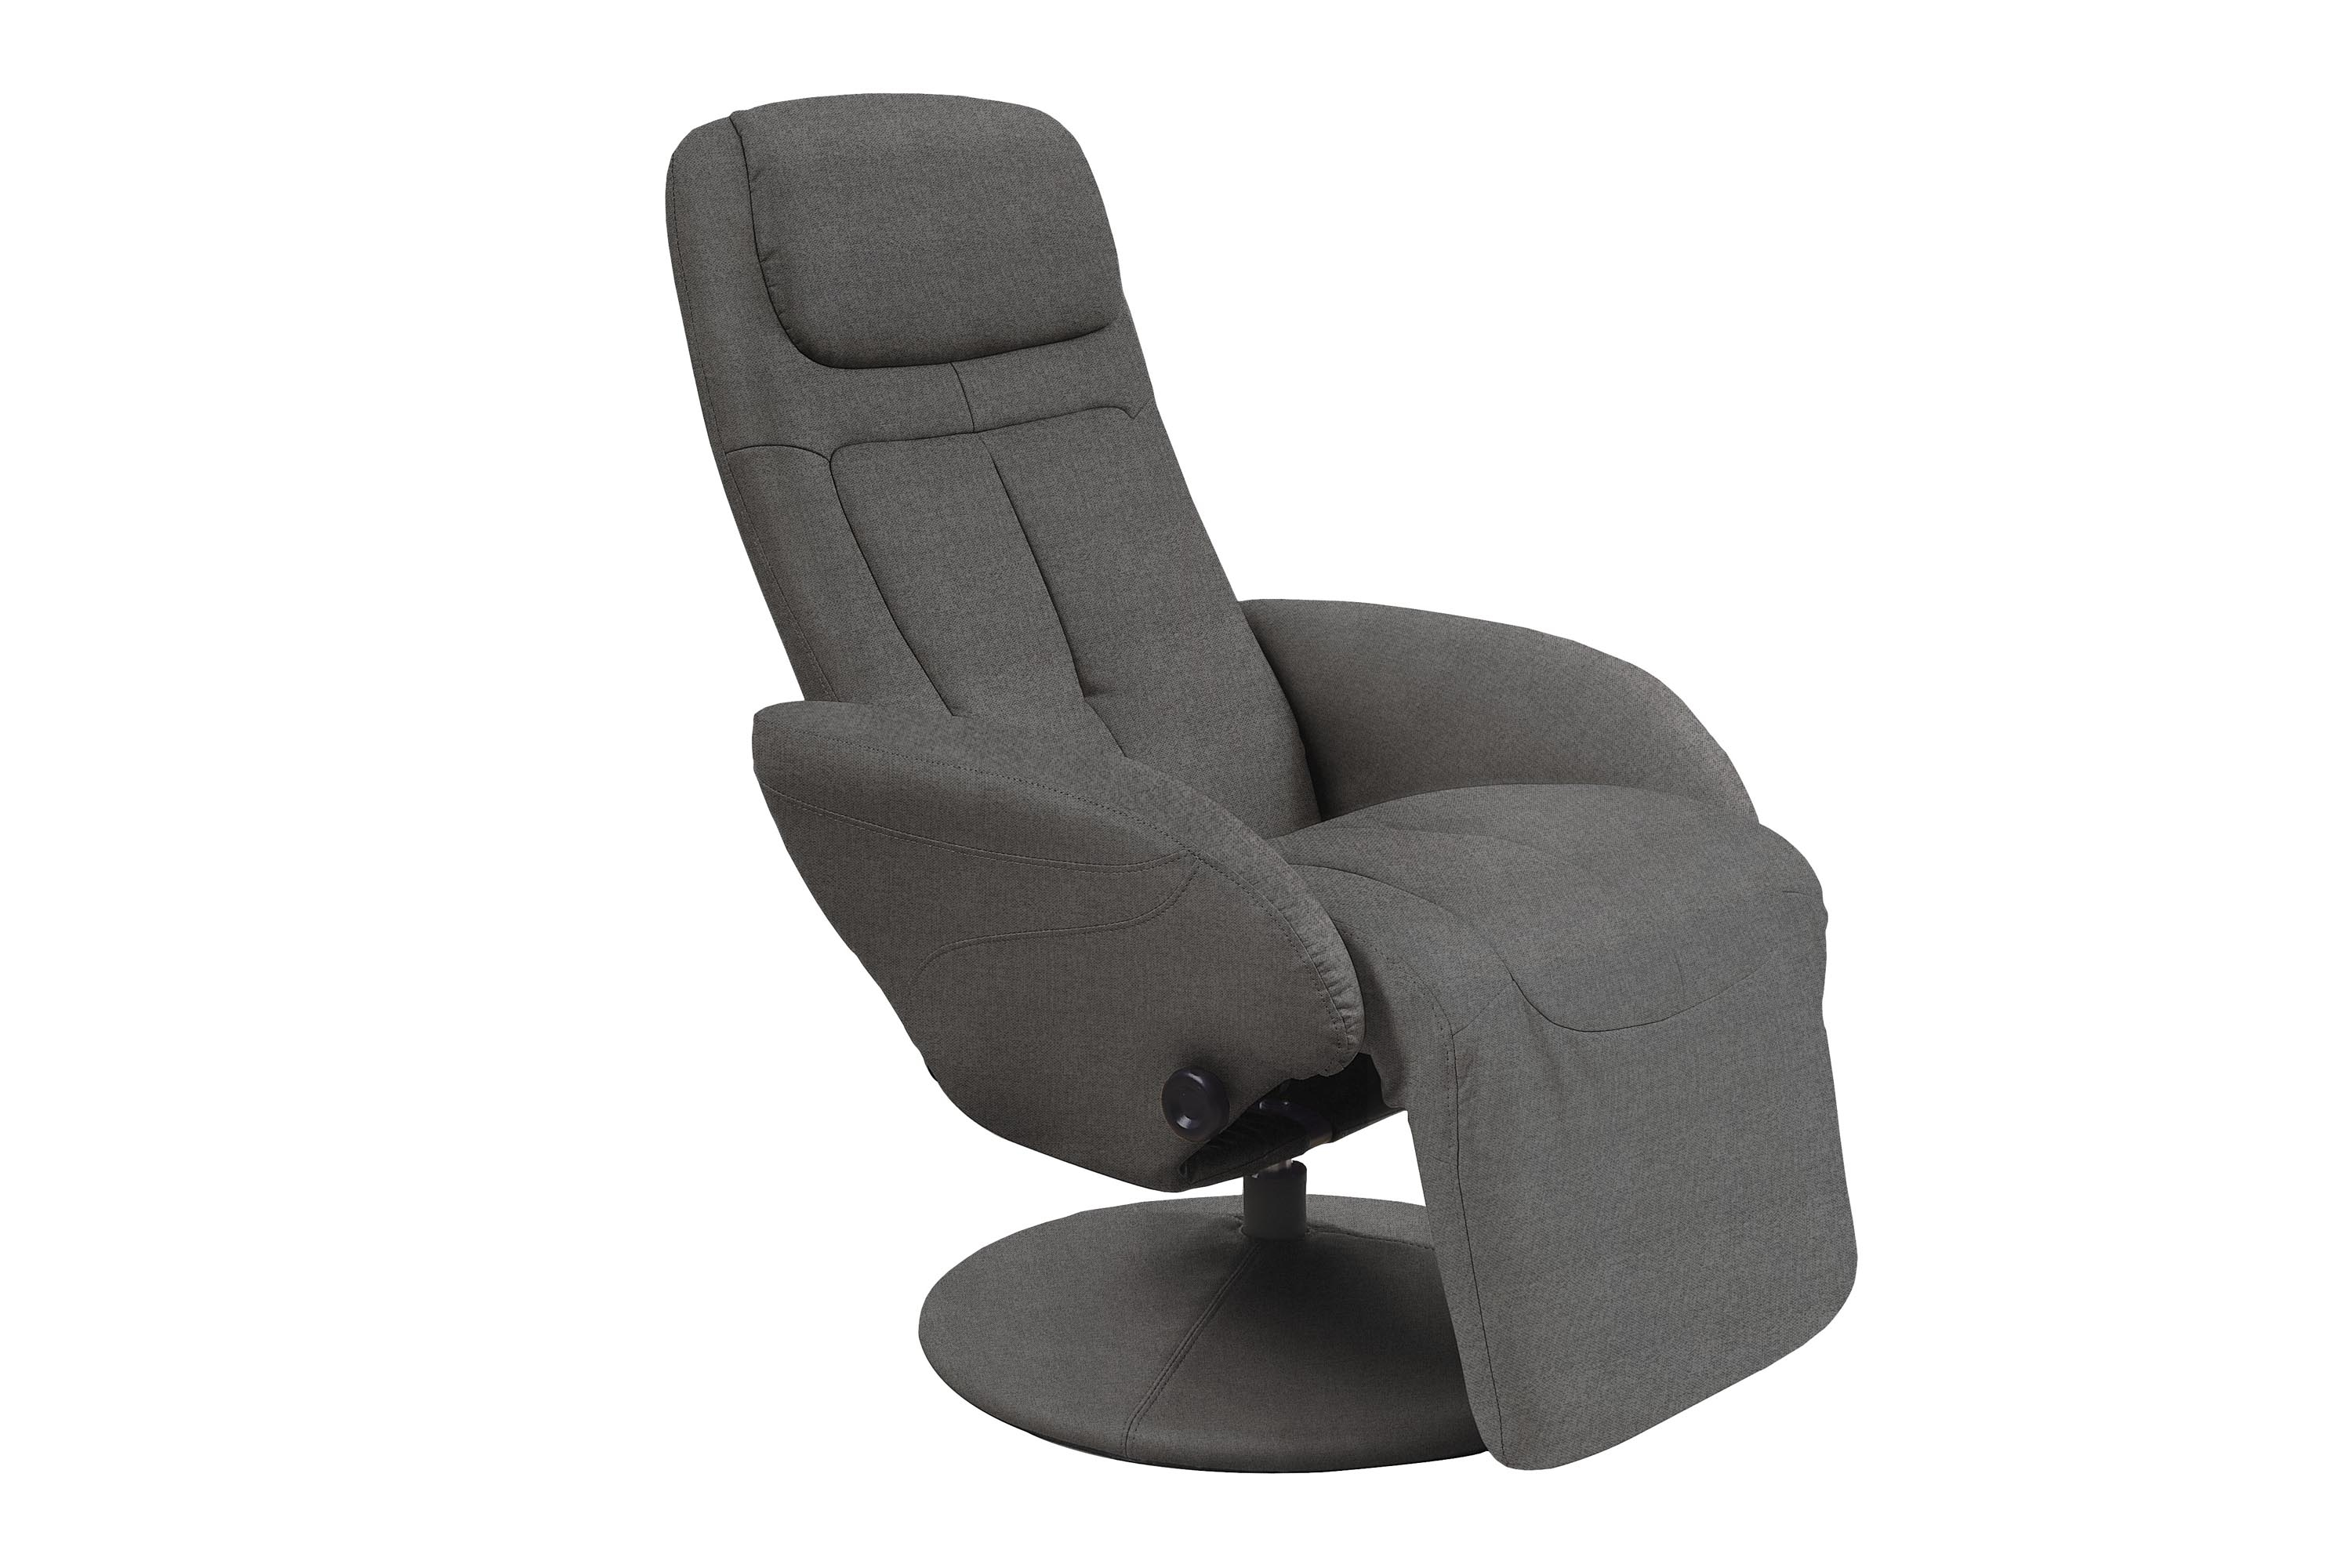 Fotoliu Recliner tapitat cu stofa Optima 2 Gri inchis, l77xA80xH101 cm imagine